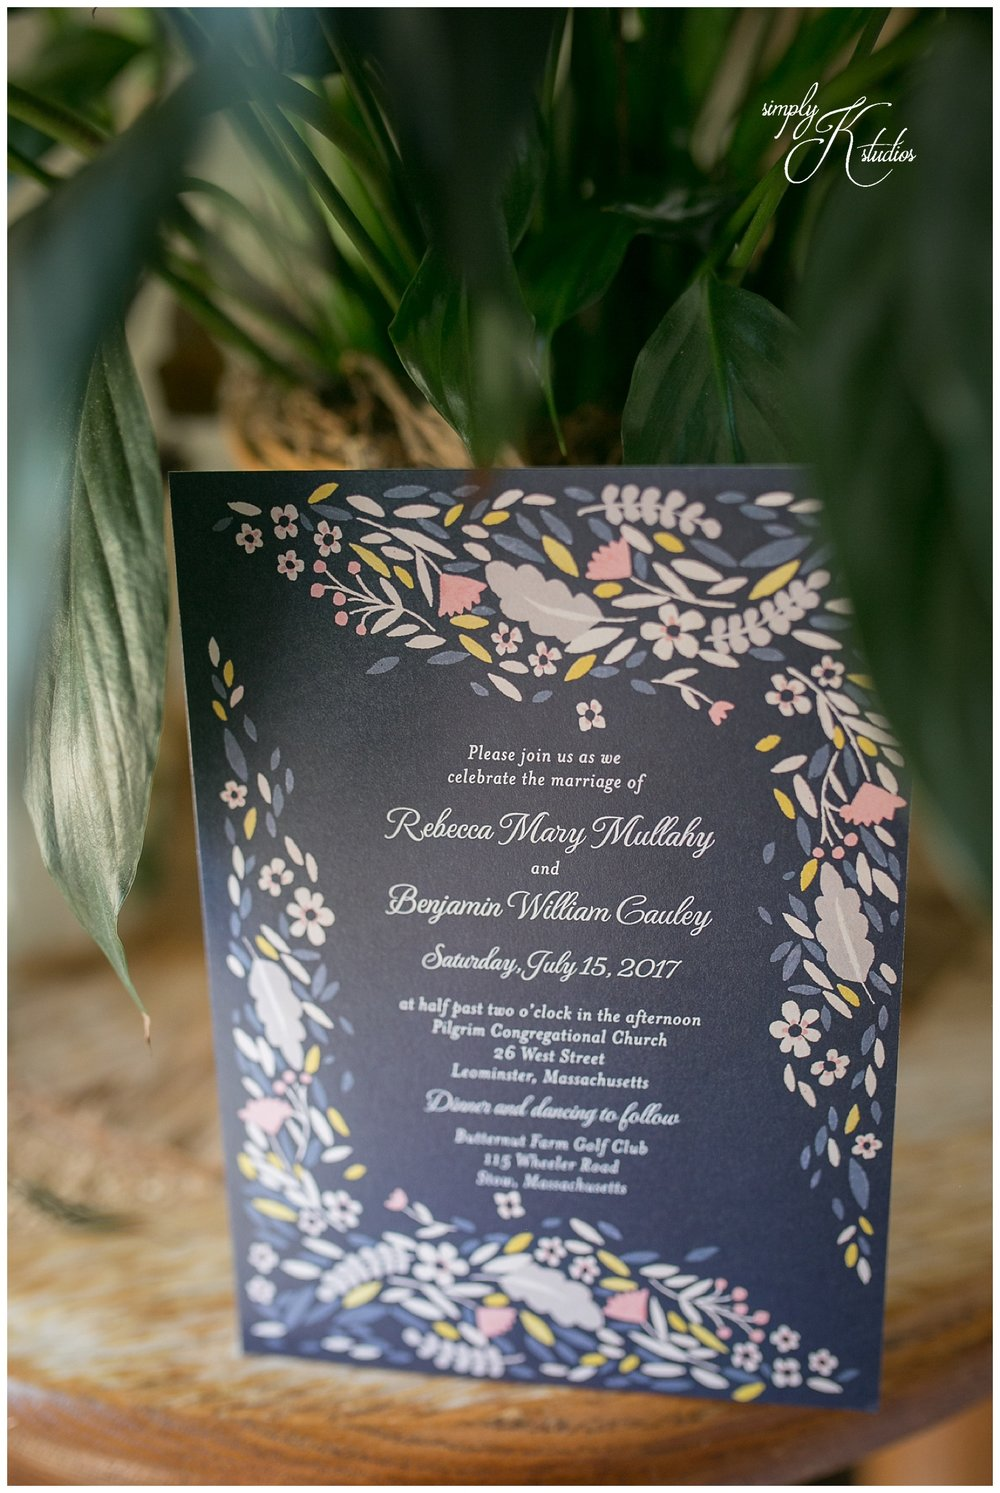 Wedding Paper Divas wedding invitations.jpg